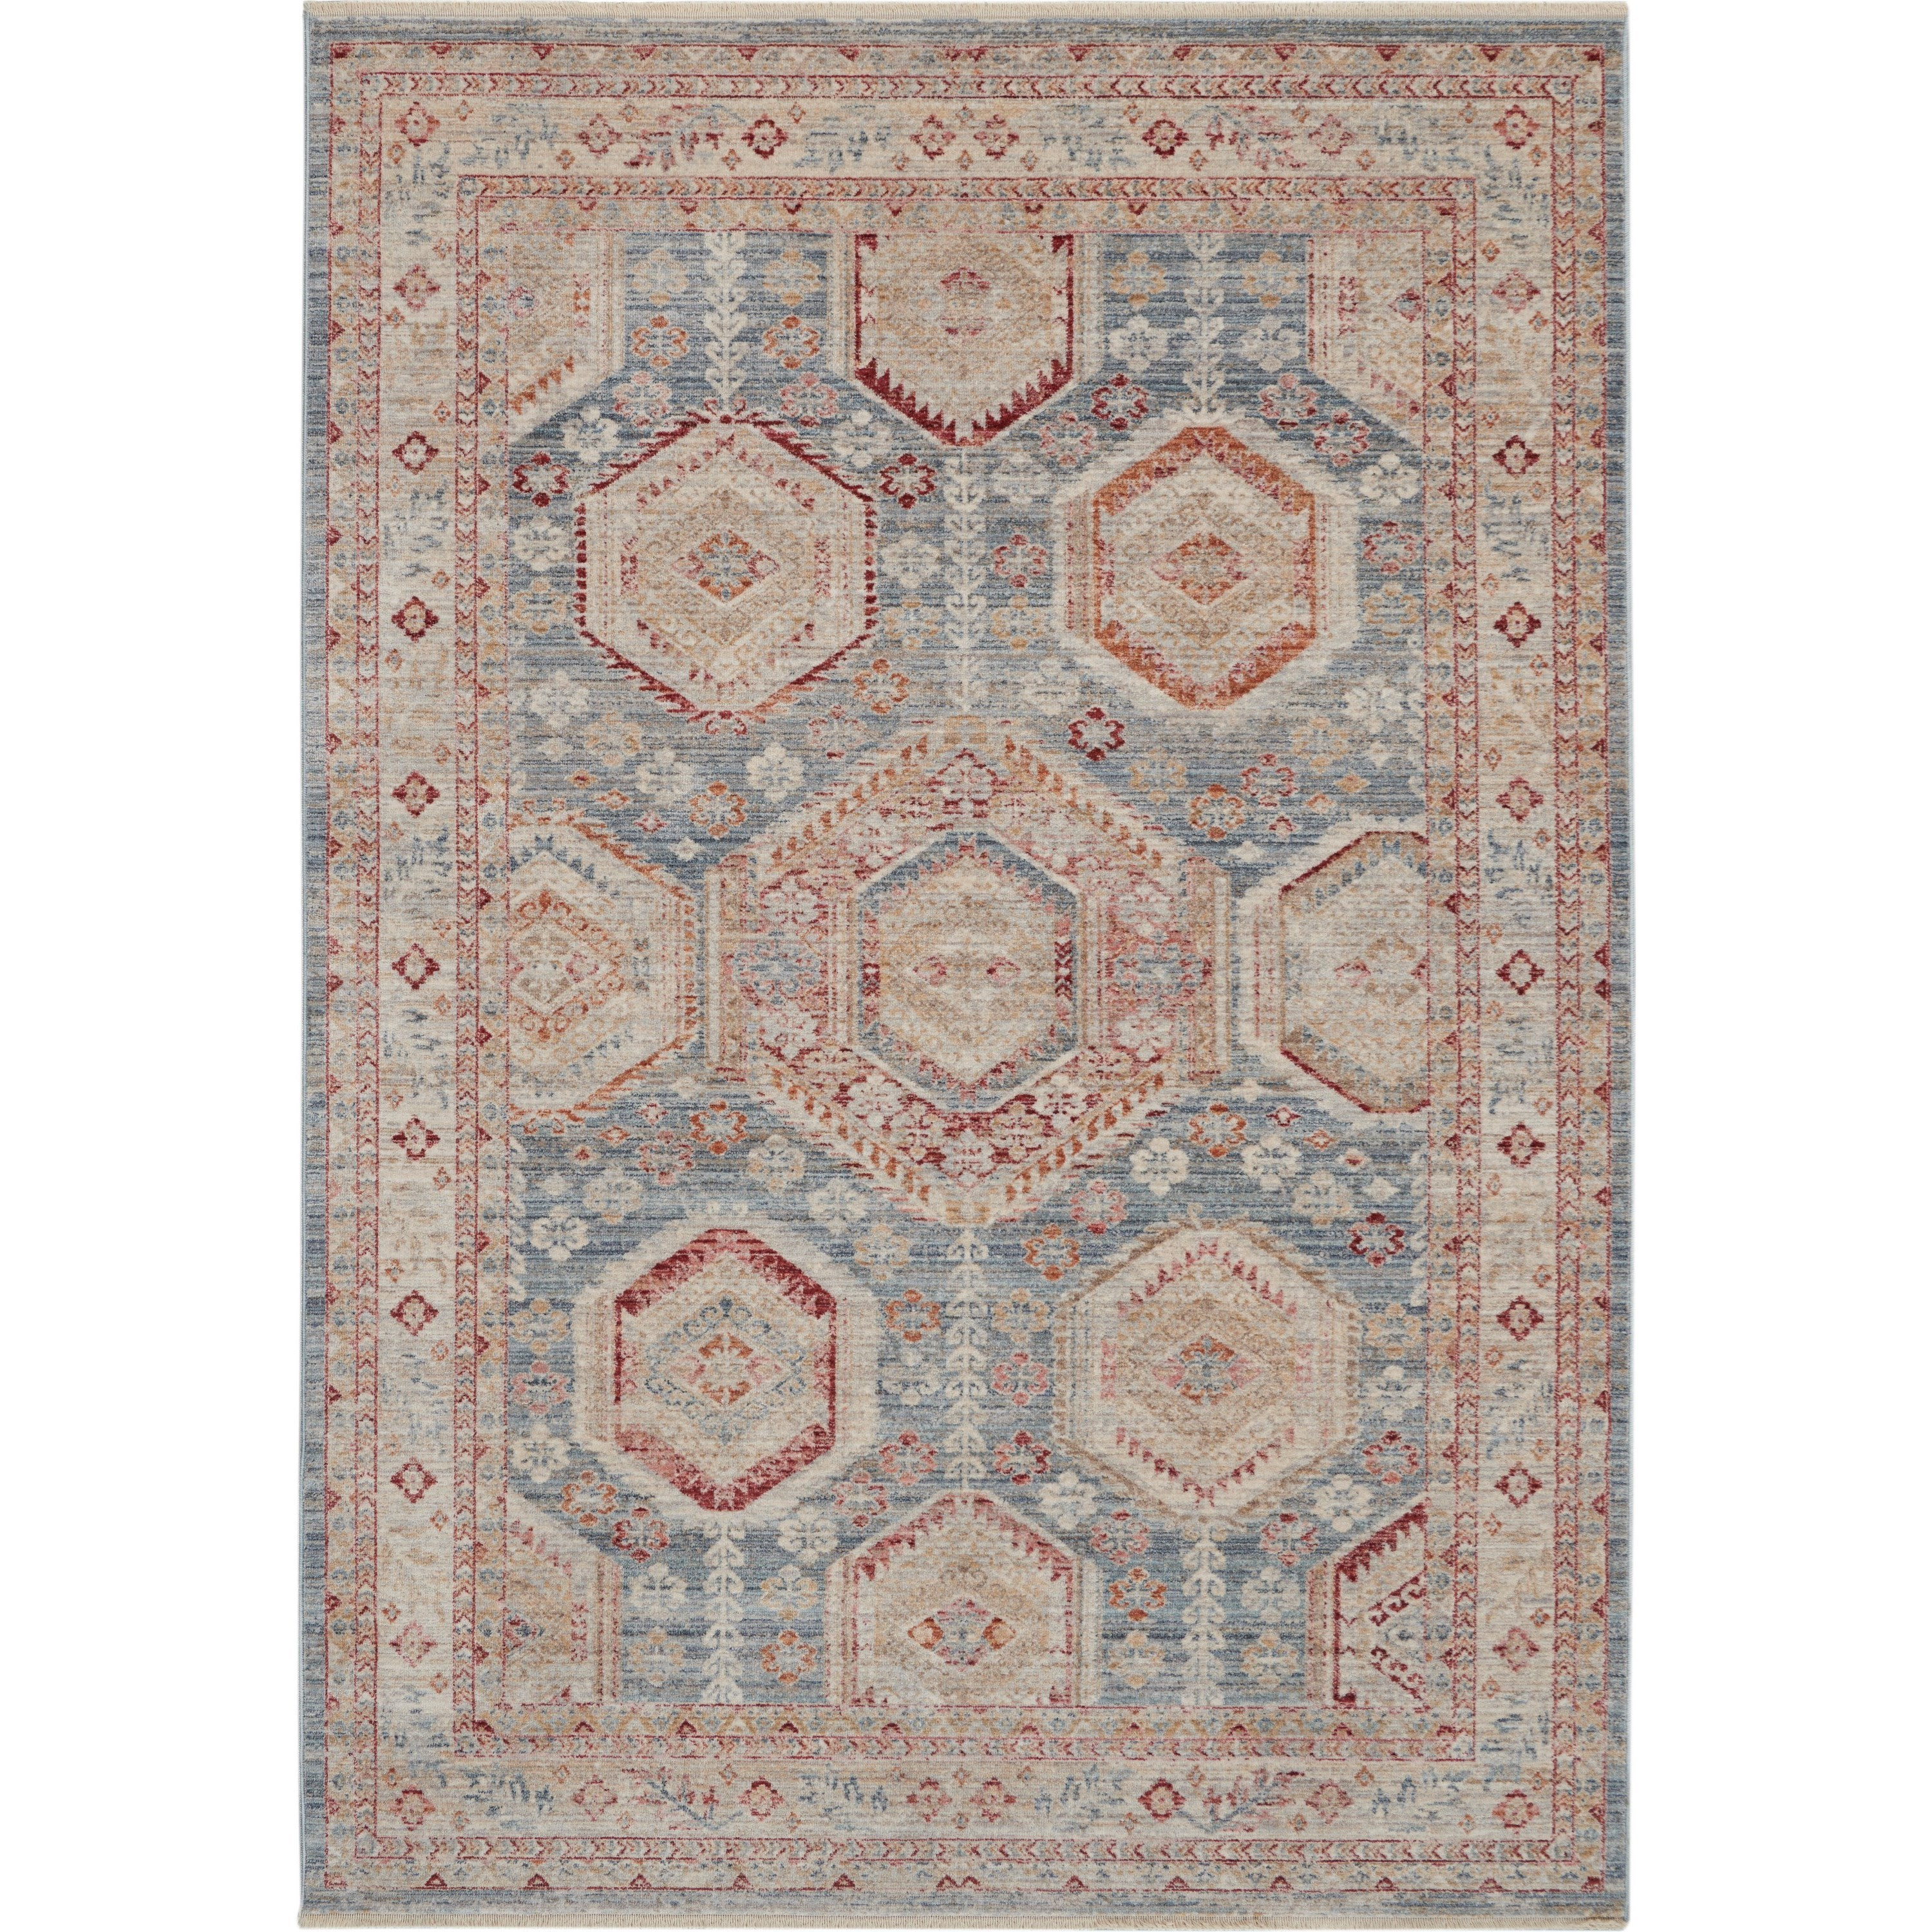 Homestead 2020 5' x 8' Rug by Nourison at Home Collections Furniture